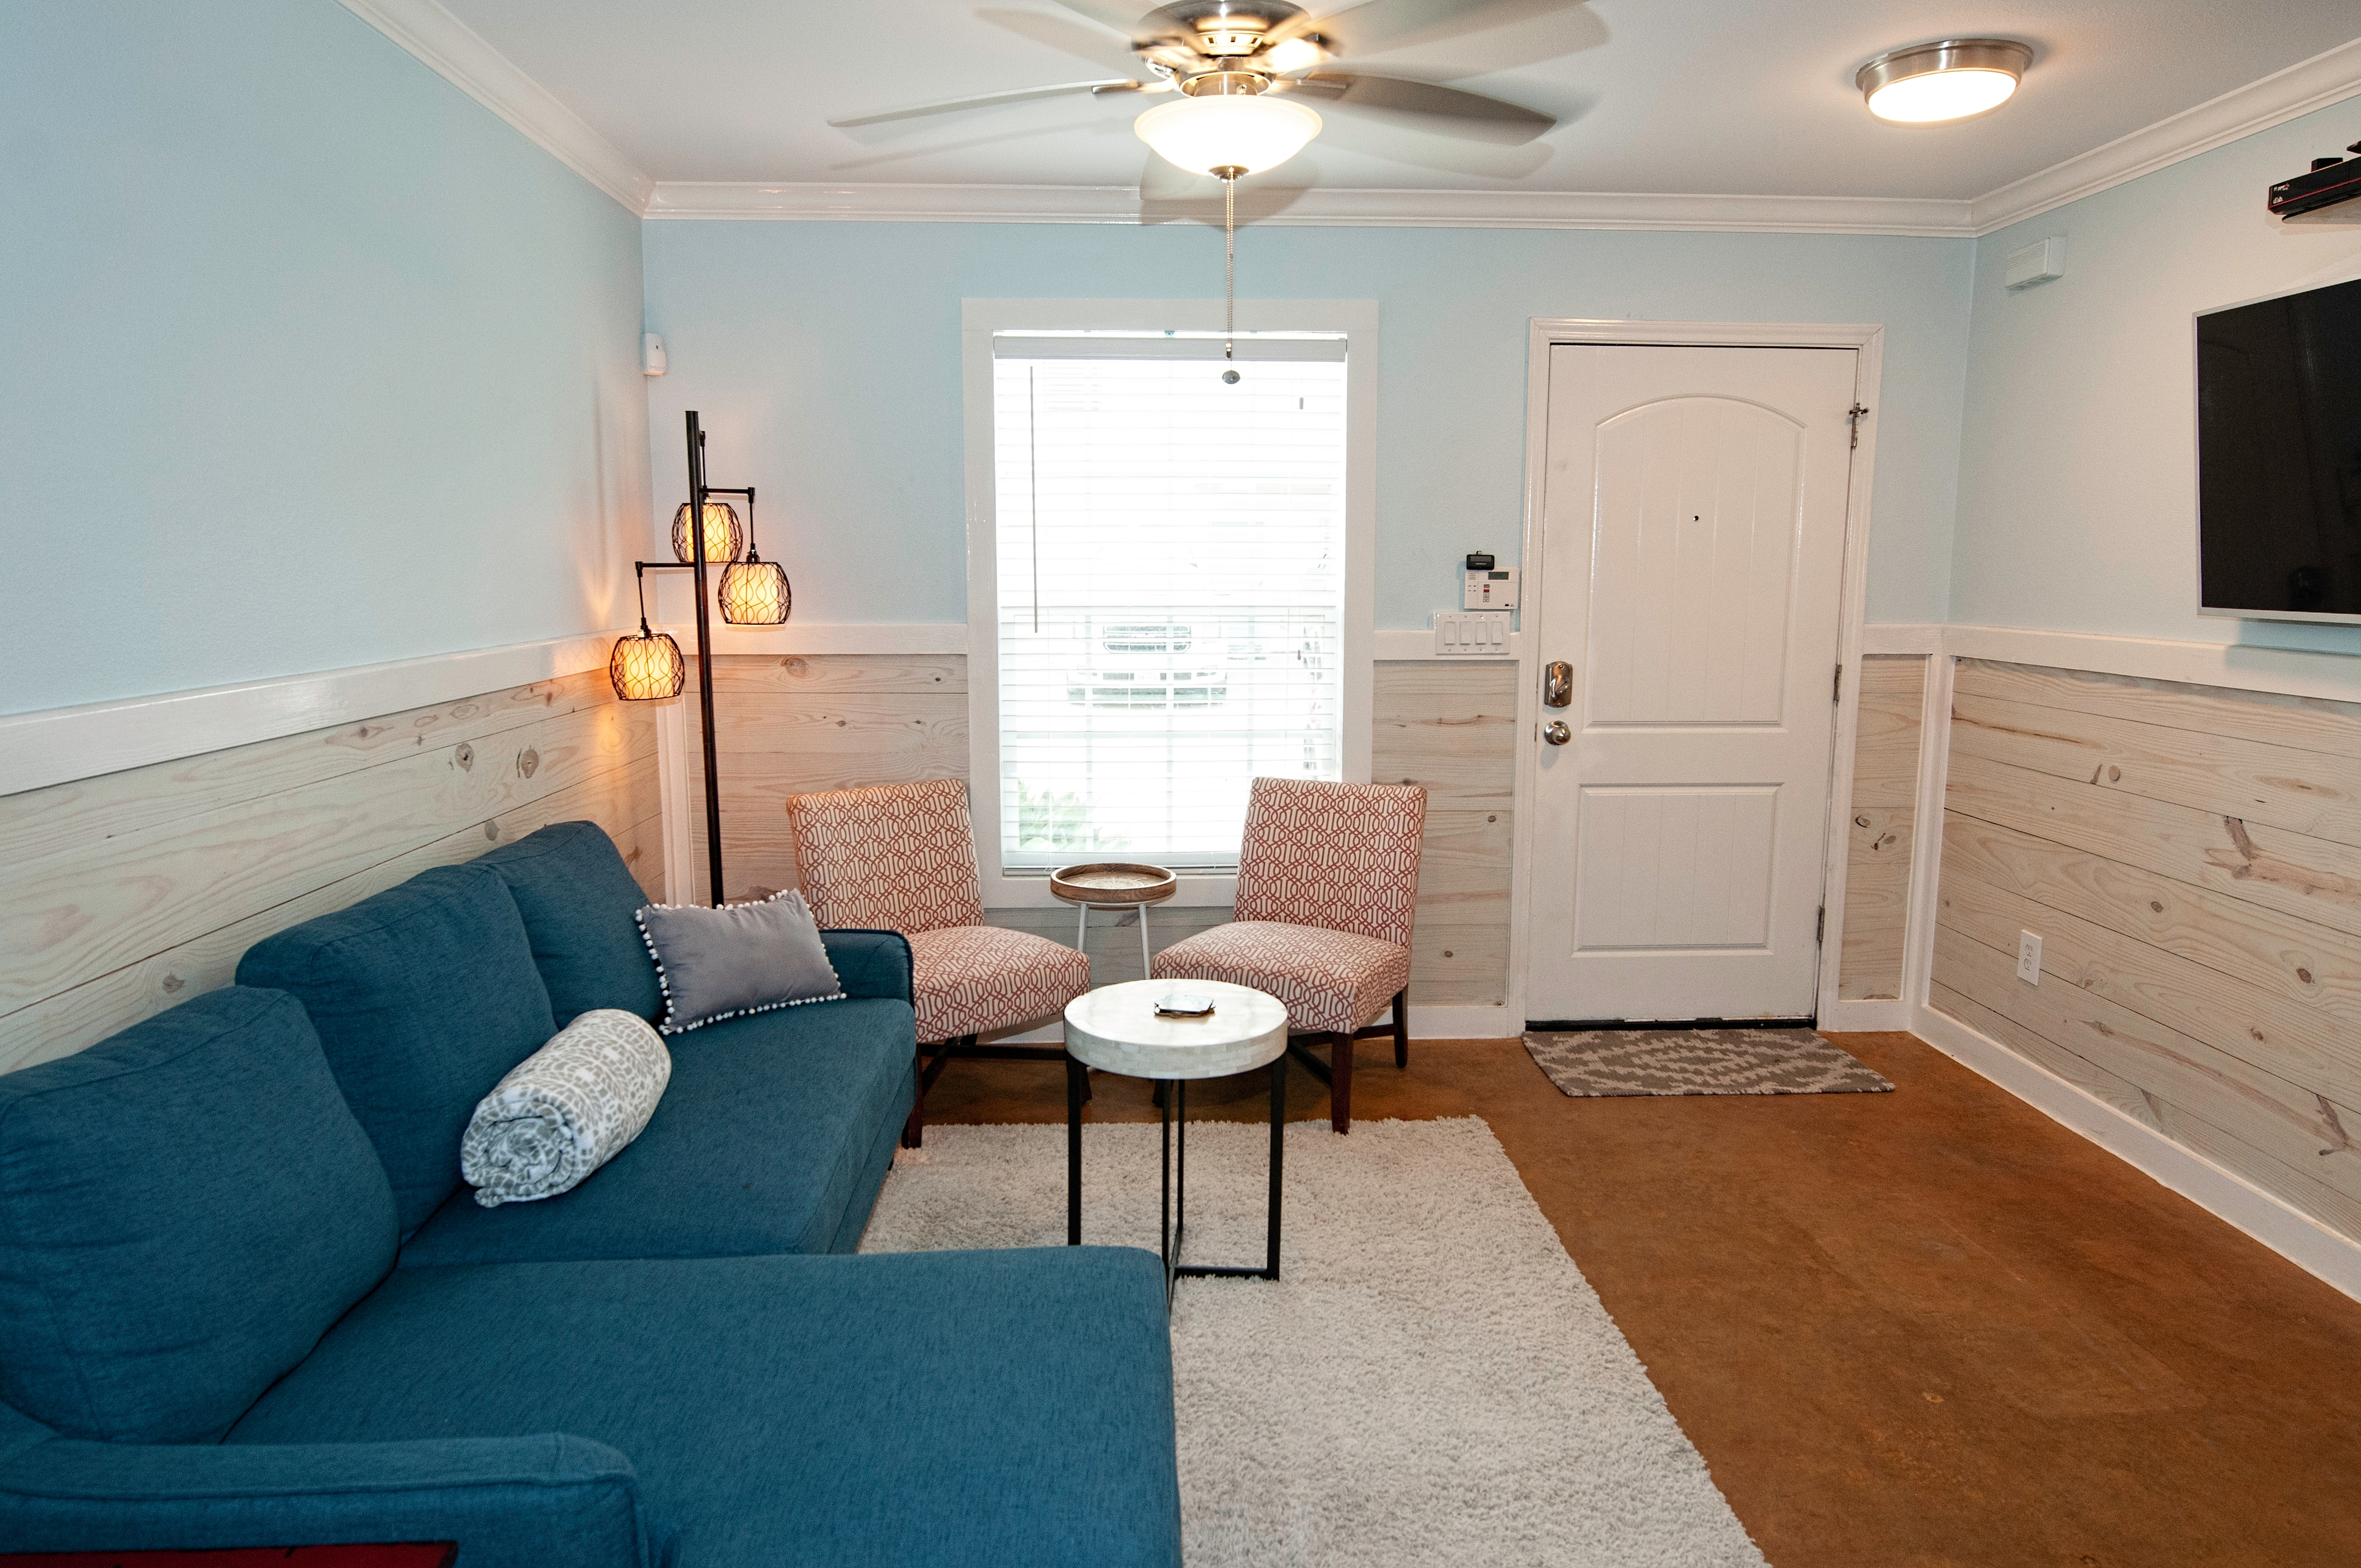 Welcome to Port Aransas! This property is professionally managed and maintained by TurnKey Vacation Rentals.